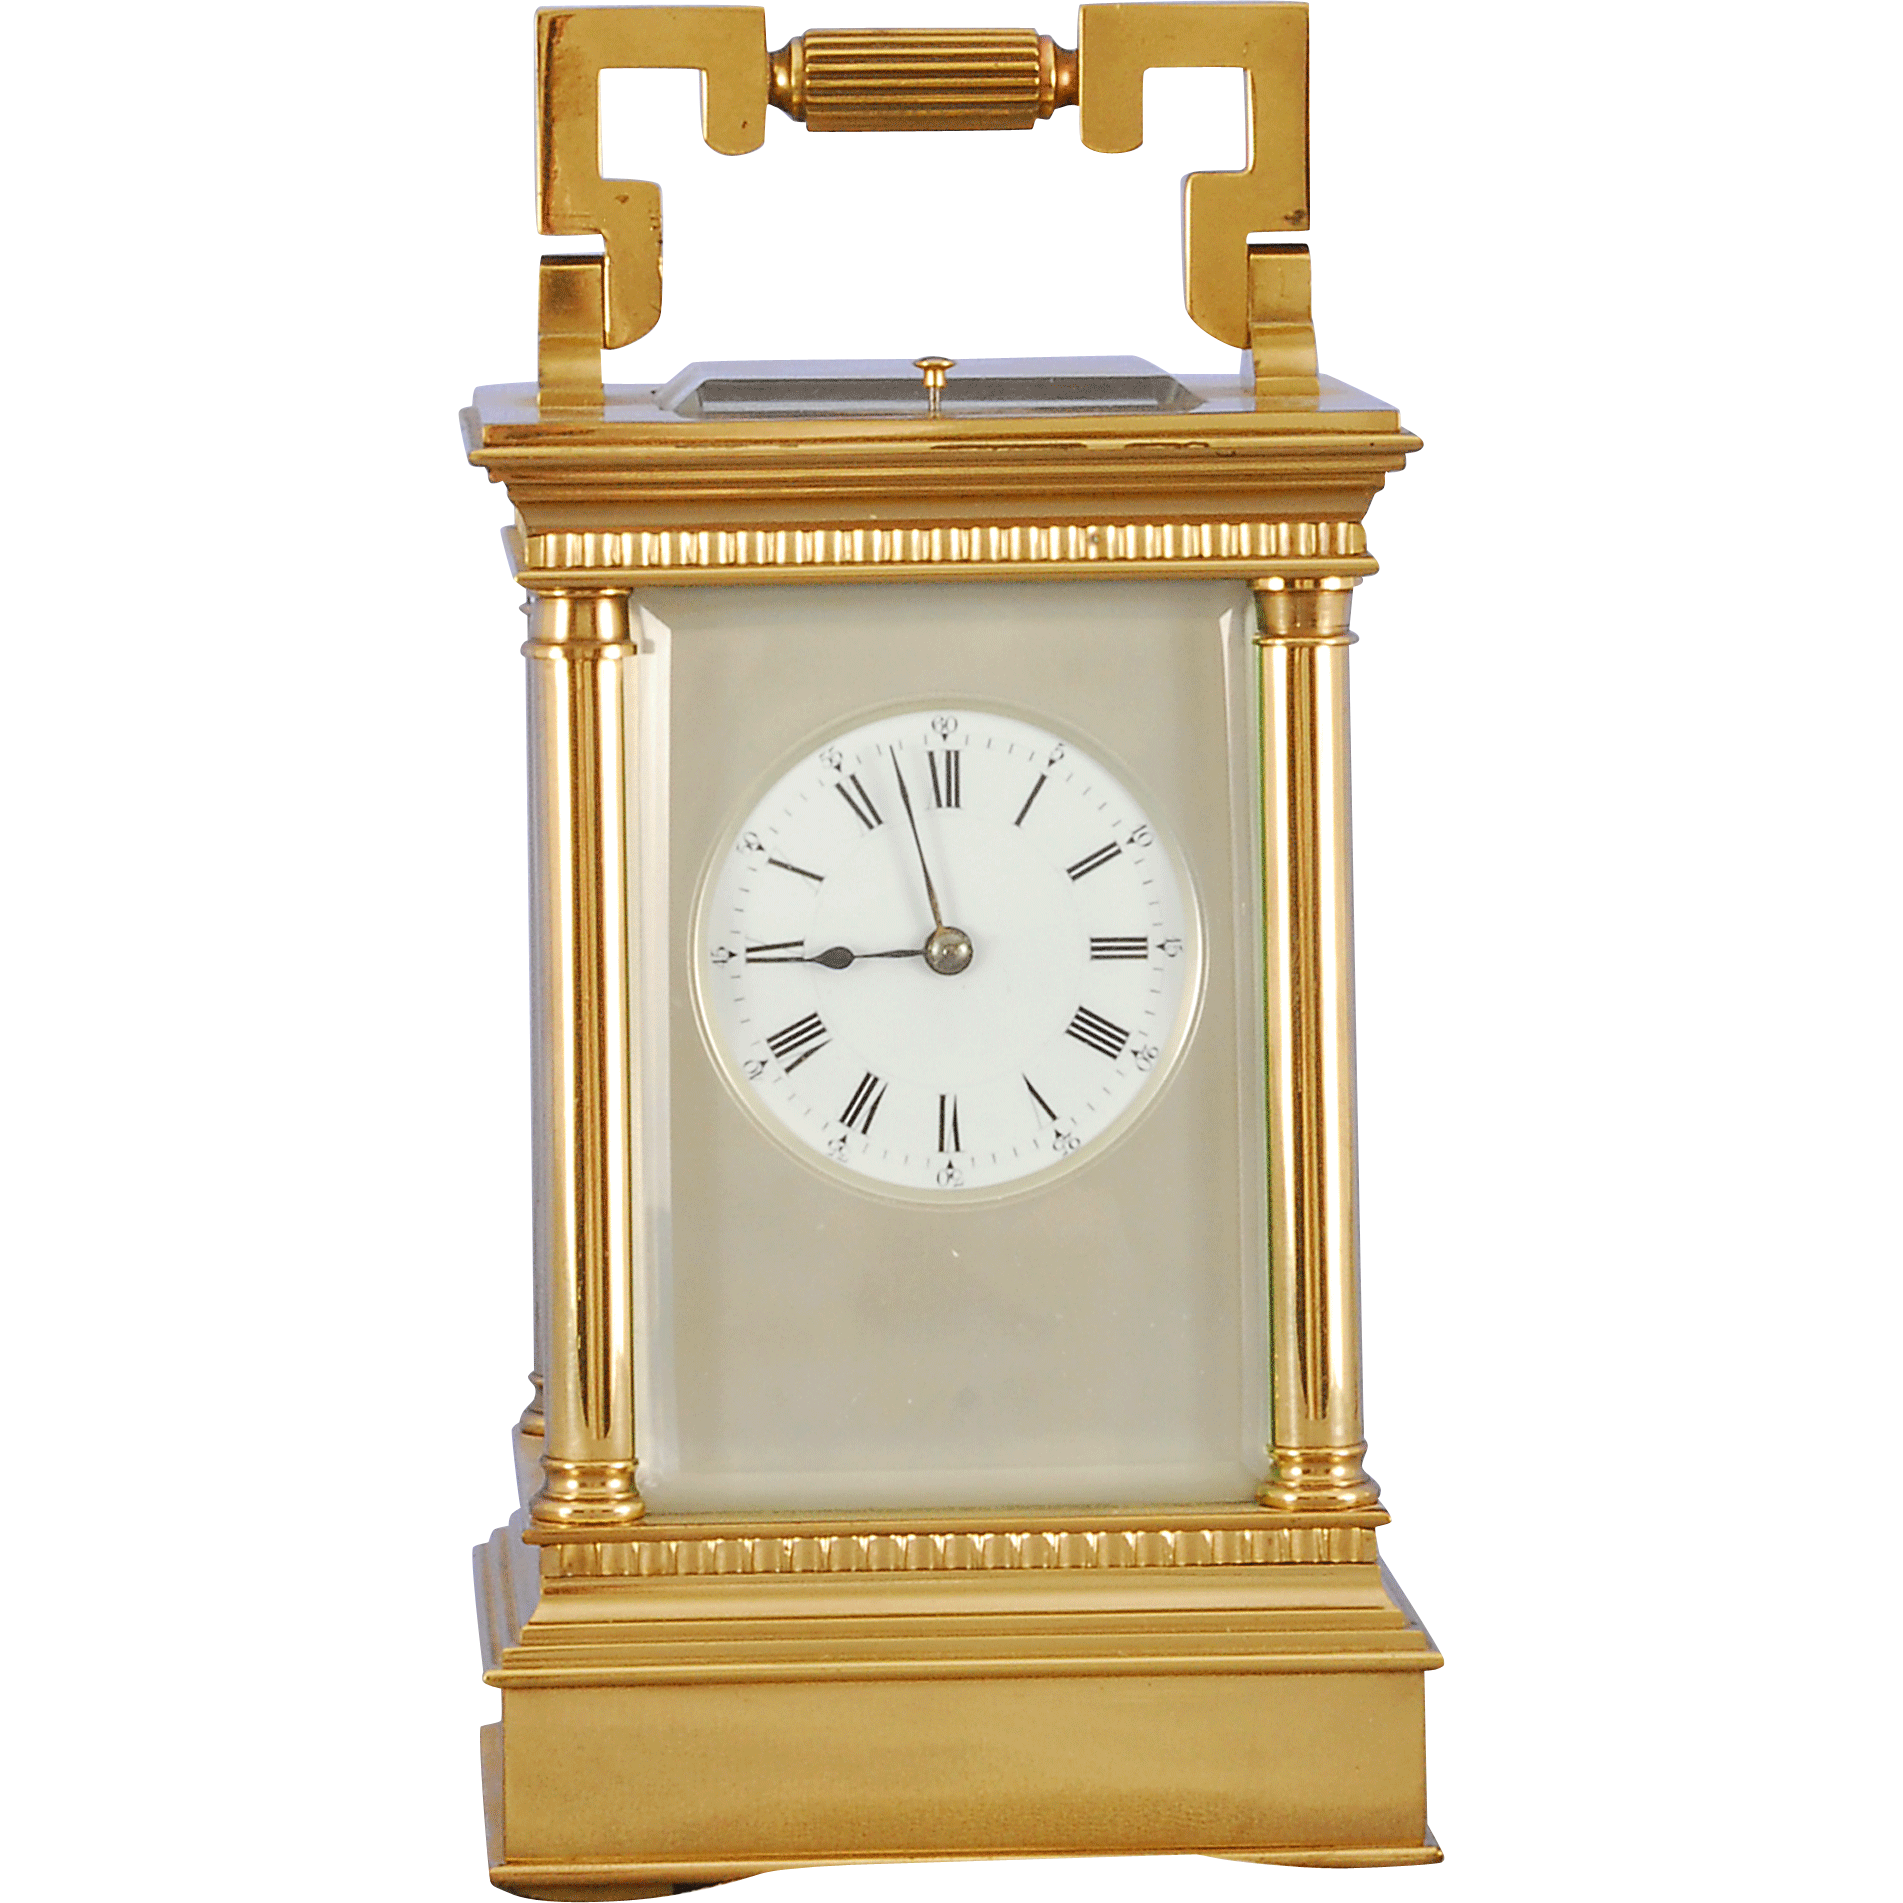 French Quarter Hour Petite Sonnerie Carriage Clock